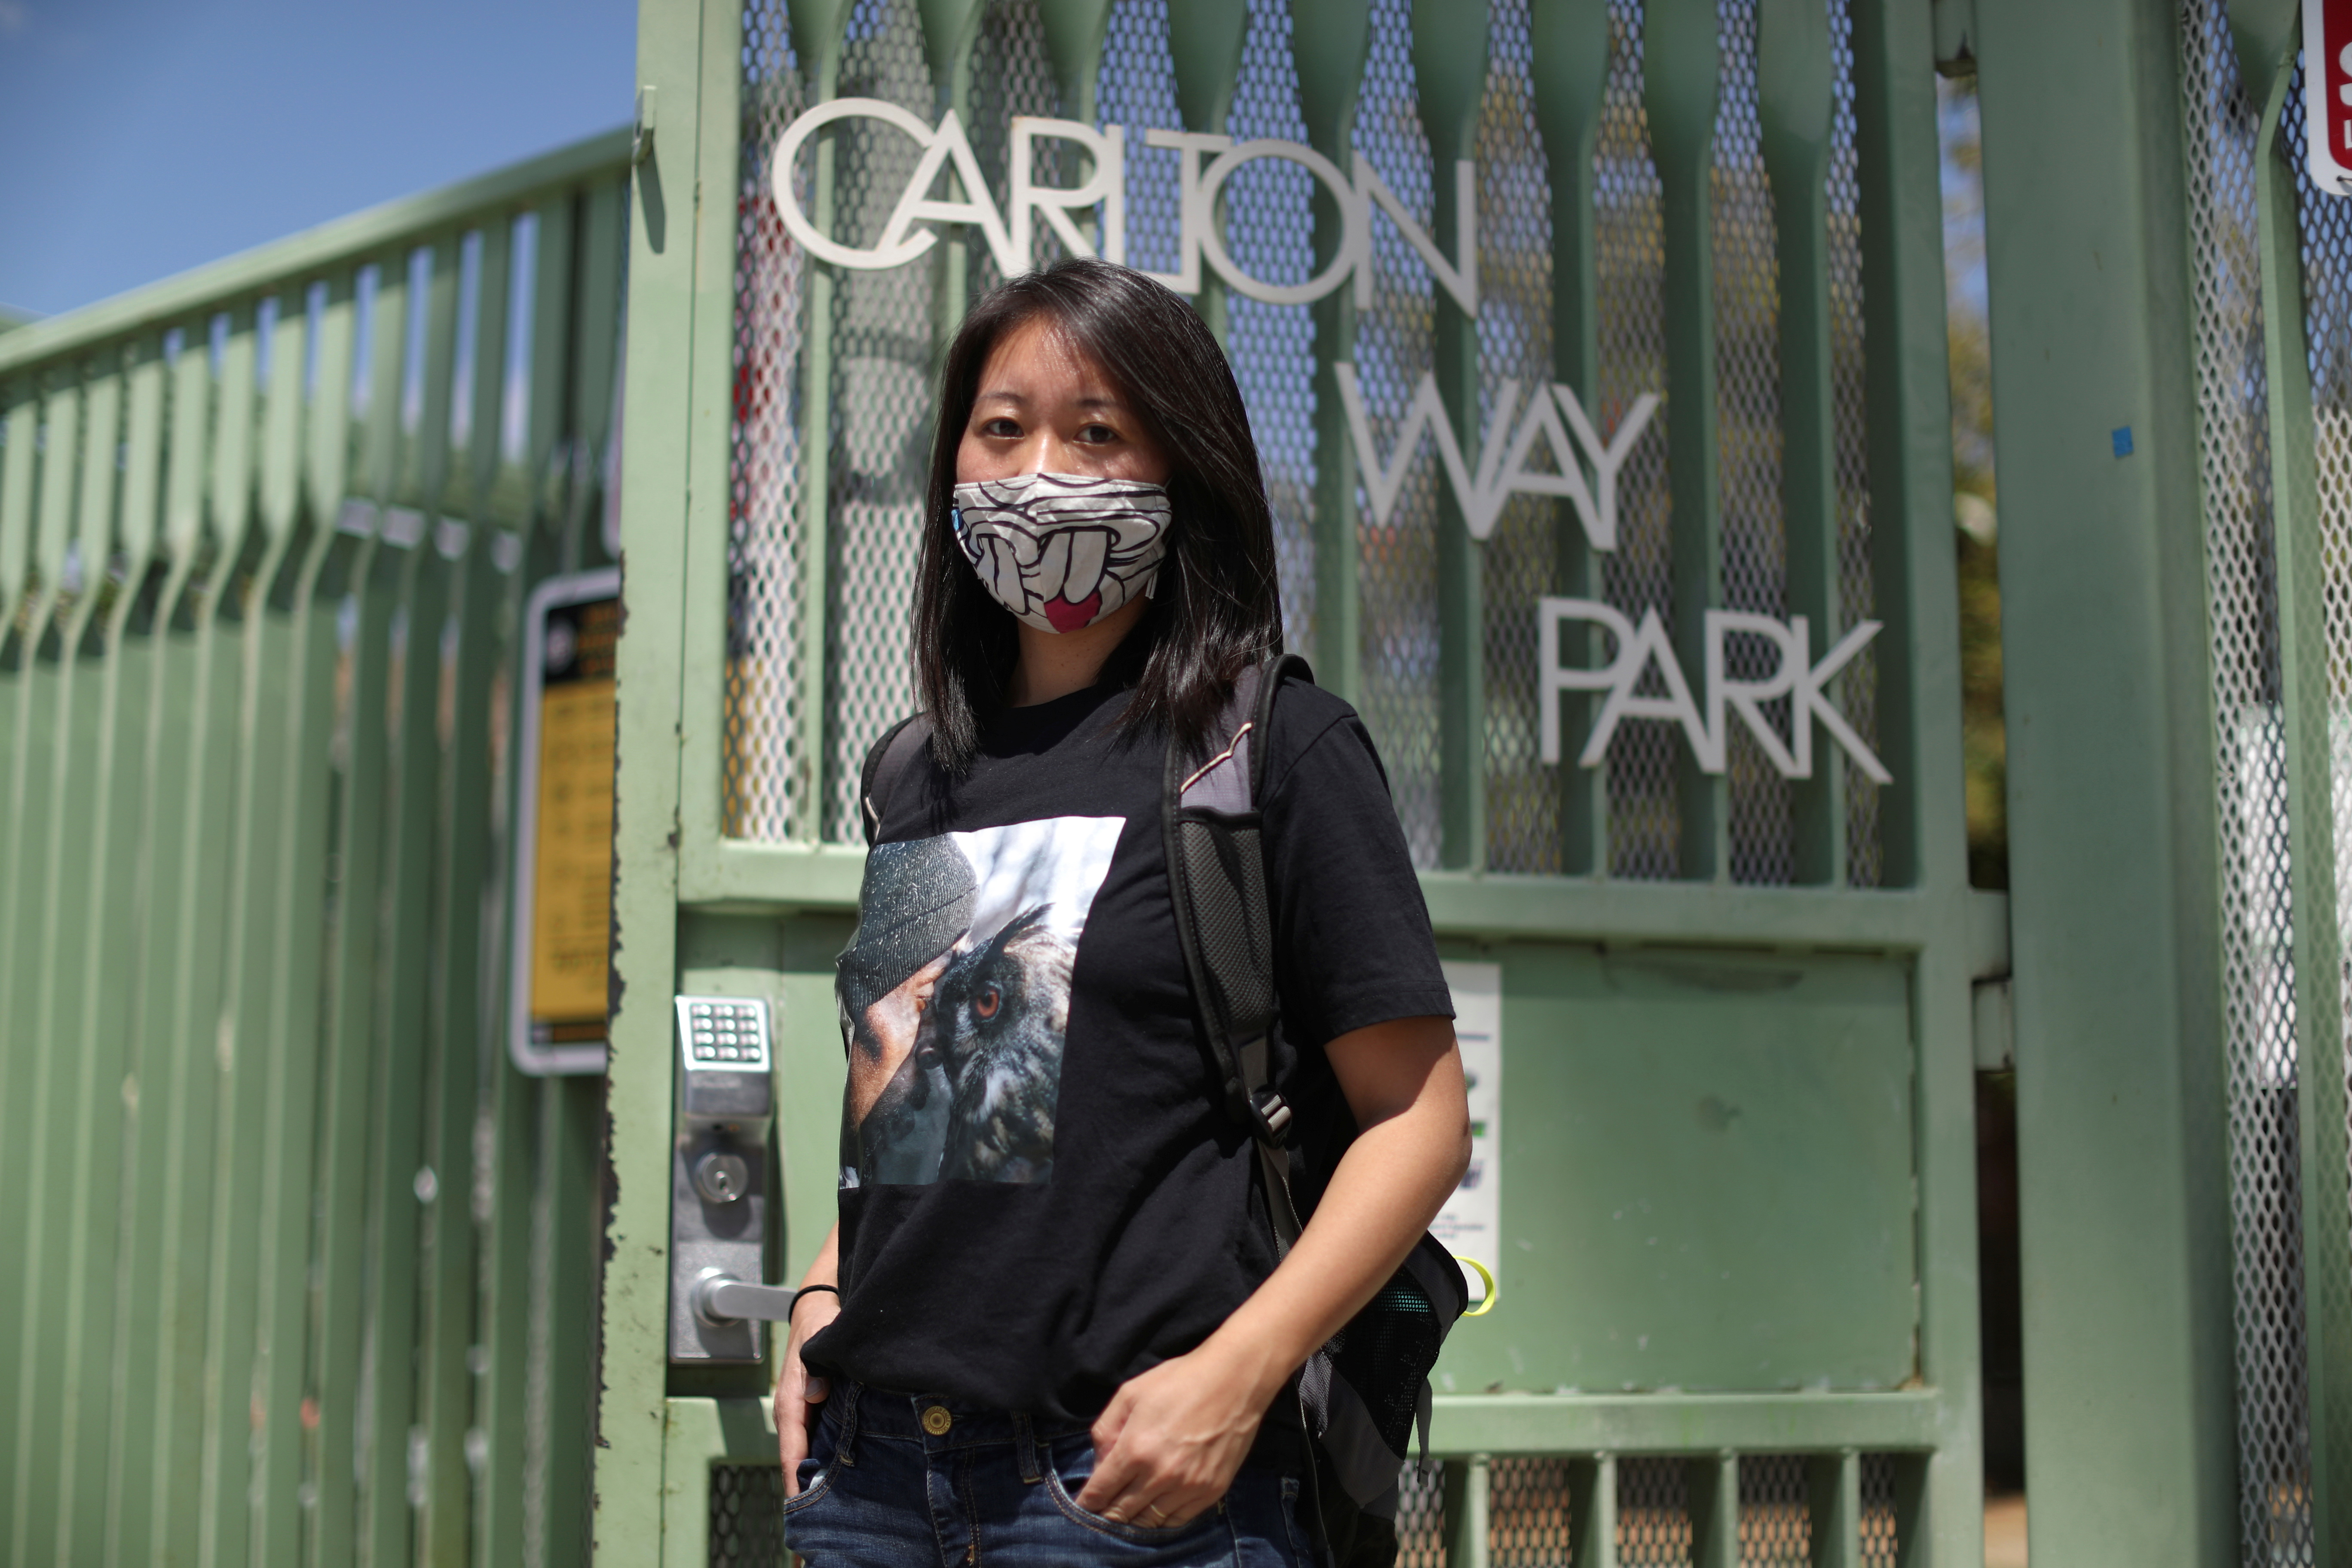 Tracy Park poses outside the park in which she was shouted at, as the coronavirus disease (COVID-19) pandemic continues, in Hollywood, Los Angeles, California, U.S., April 27, 2021.REUTERS/Lucy Nicholson